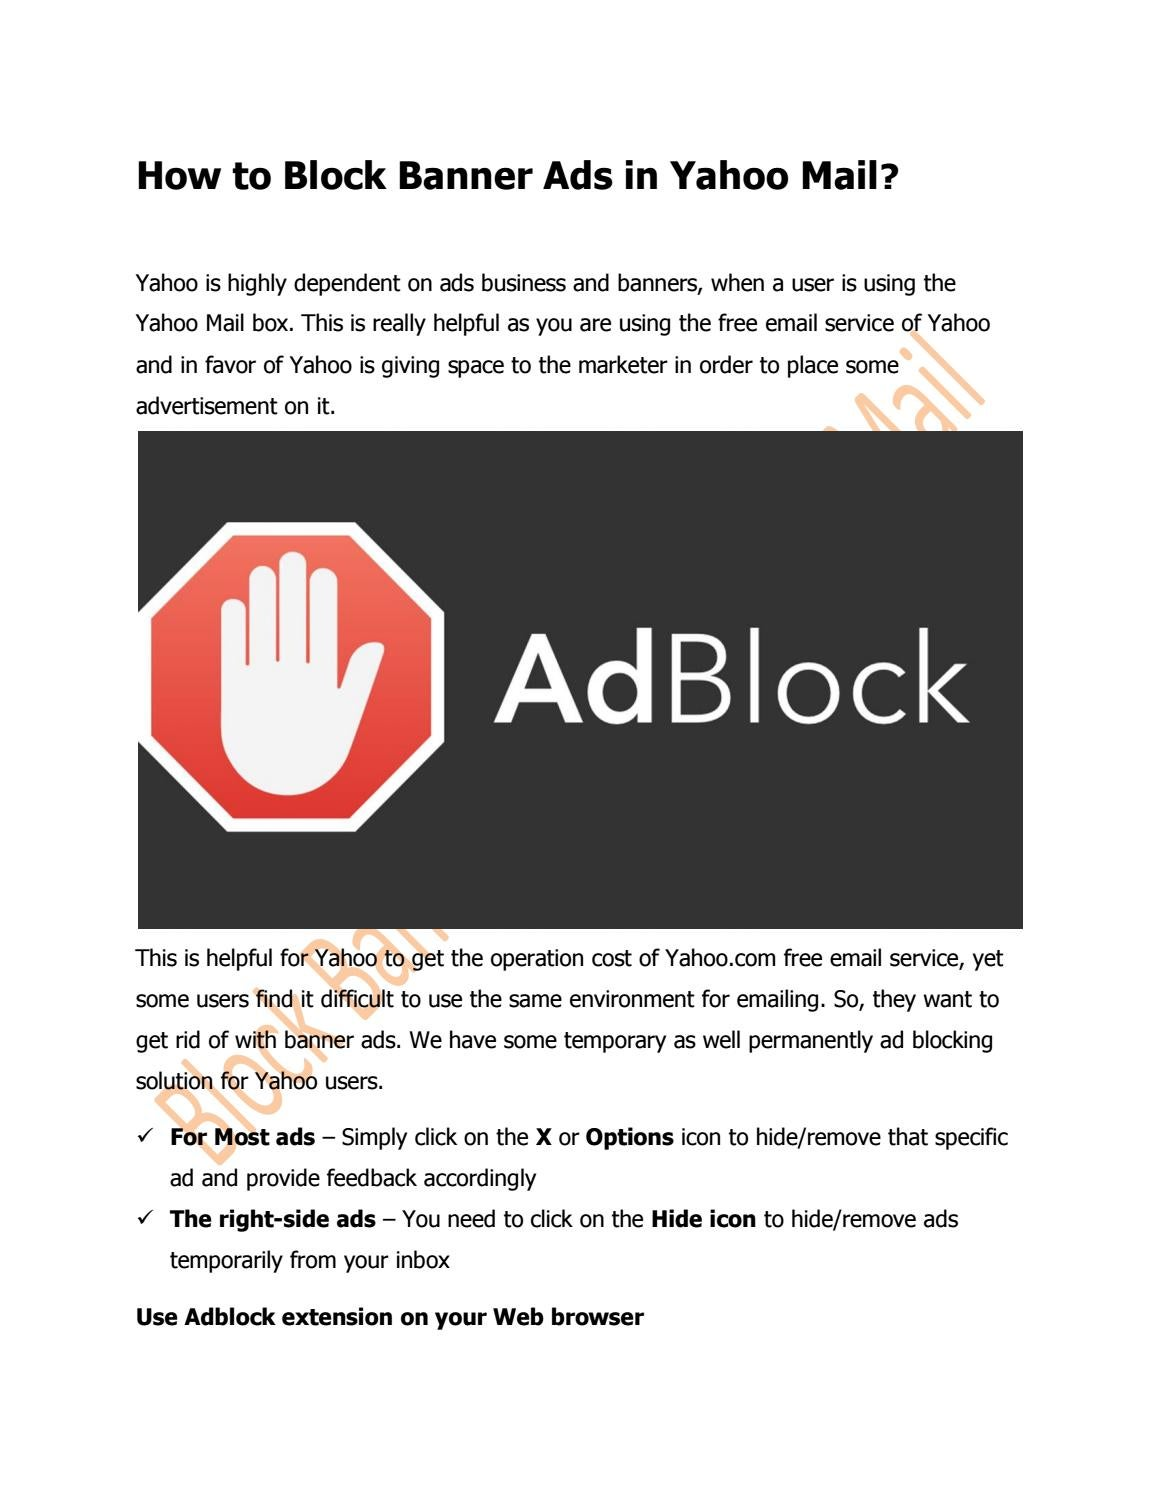 How to block banners 43